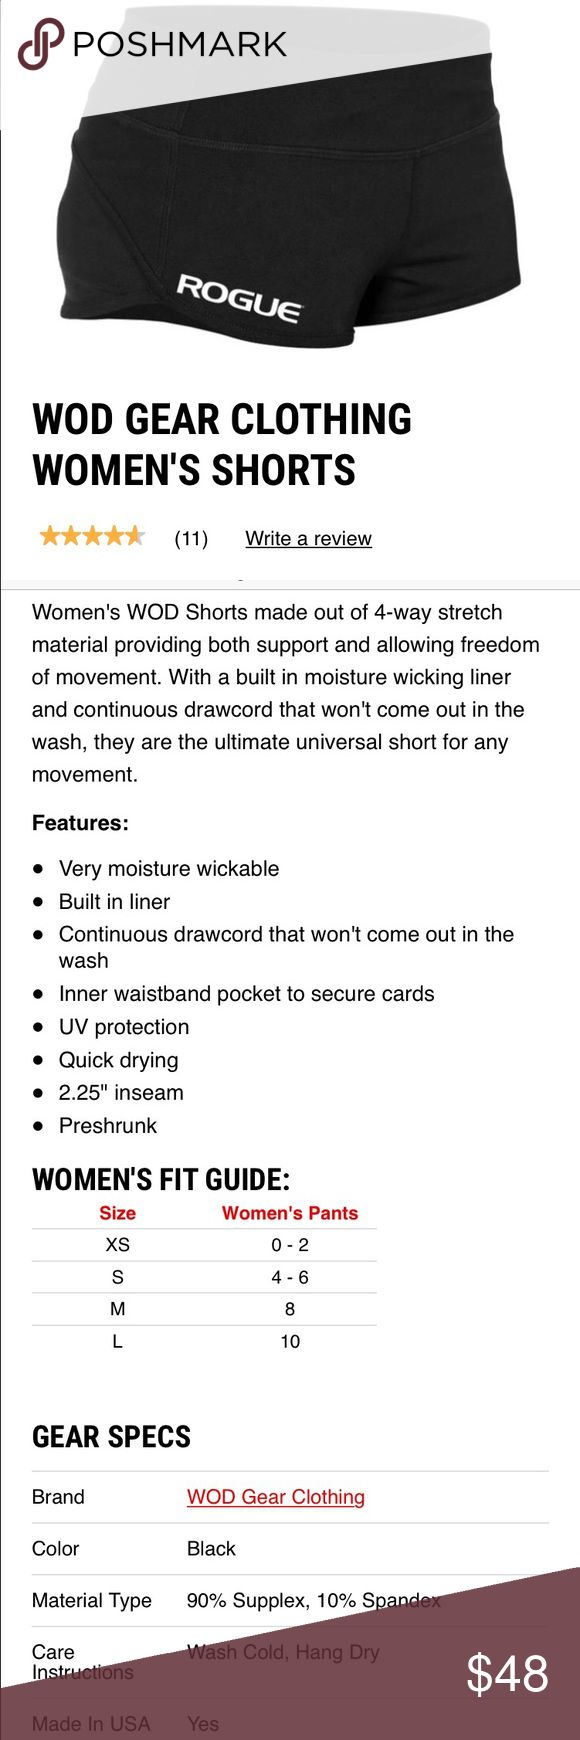 Rogue WOD Gear - CrossFit Women's Shorts, Size S Brand new, never been washed or worn. NWOT, make a reasonable offer! Rogue Shorts